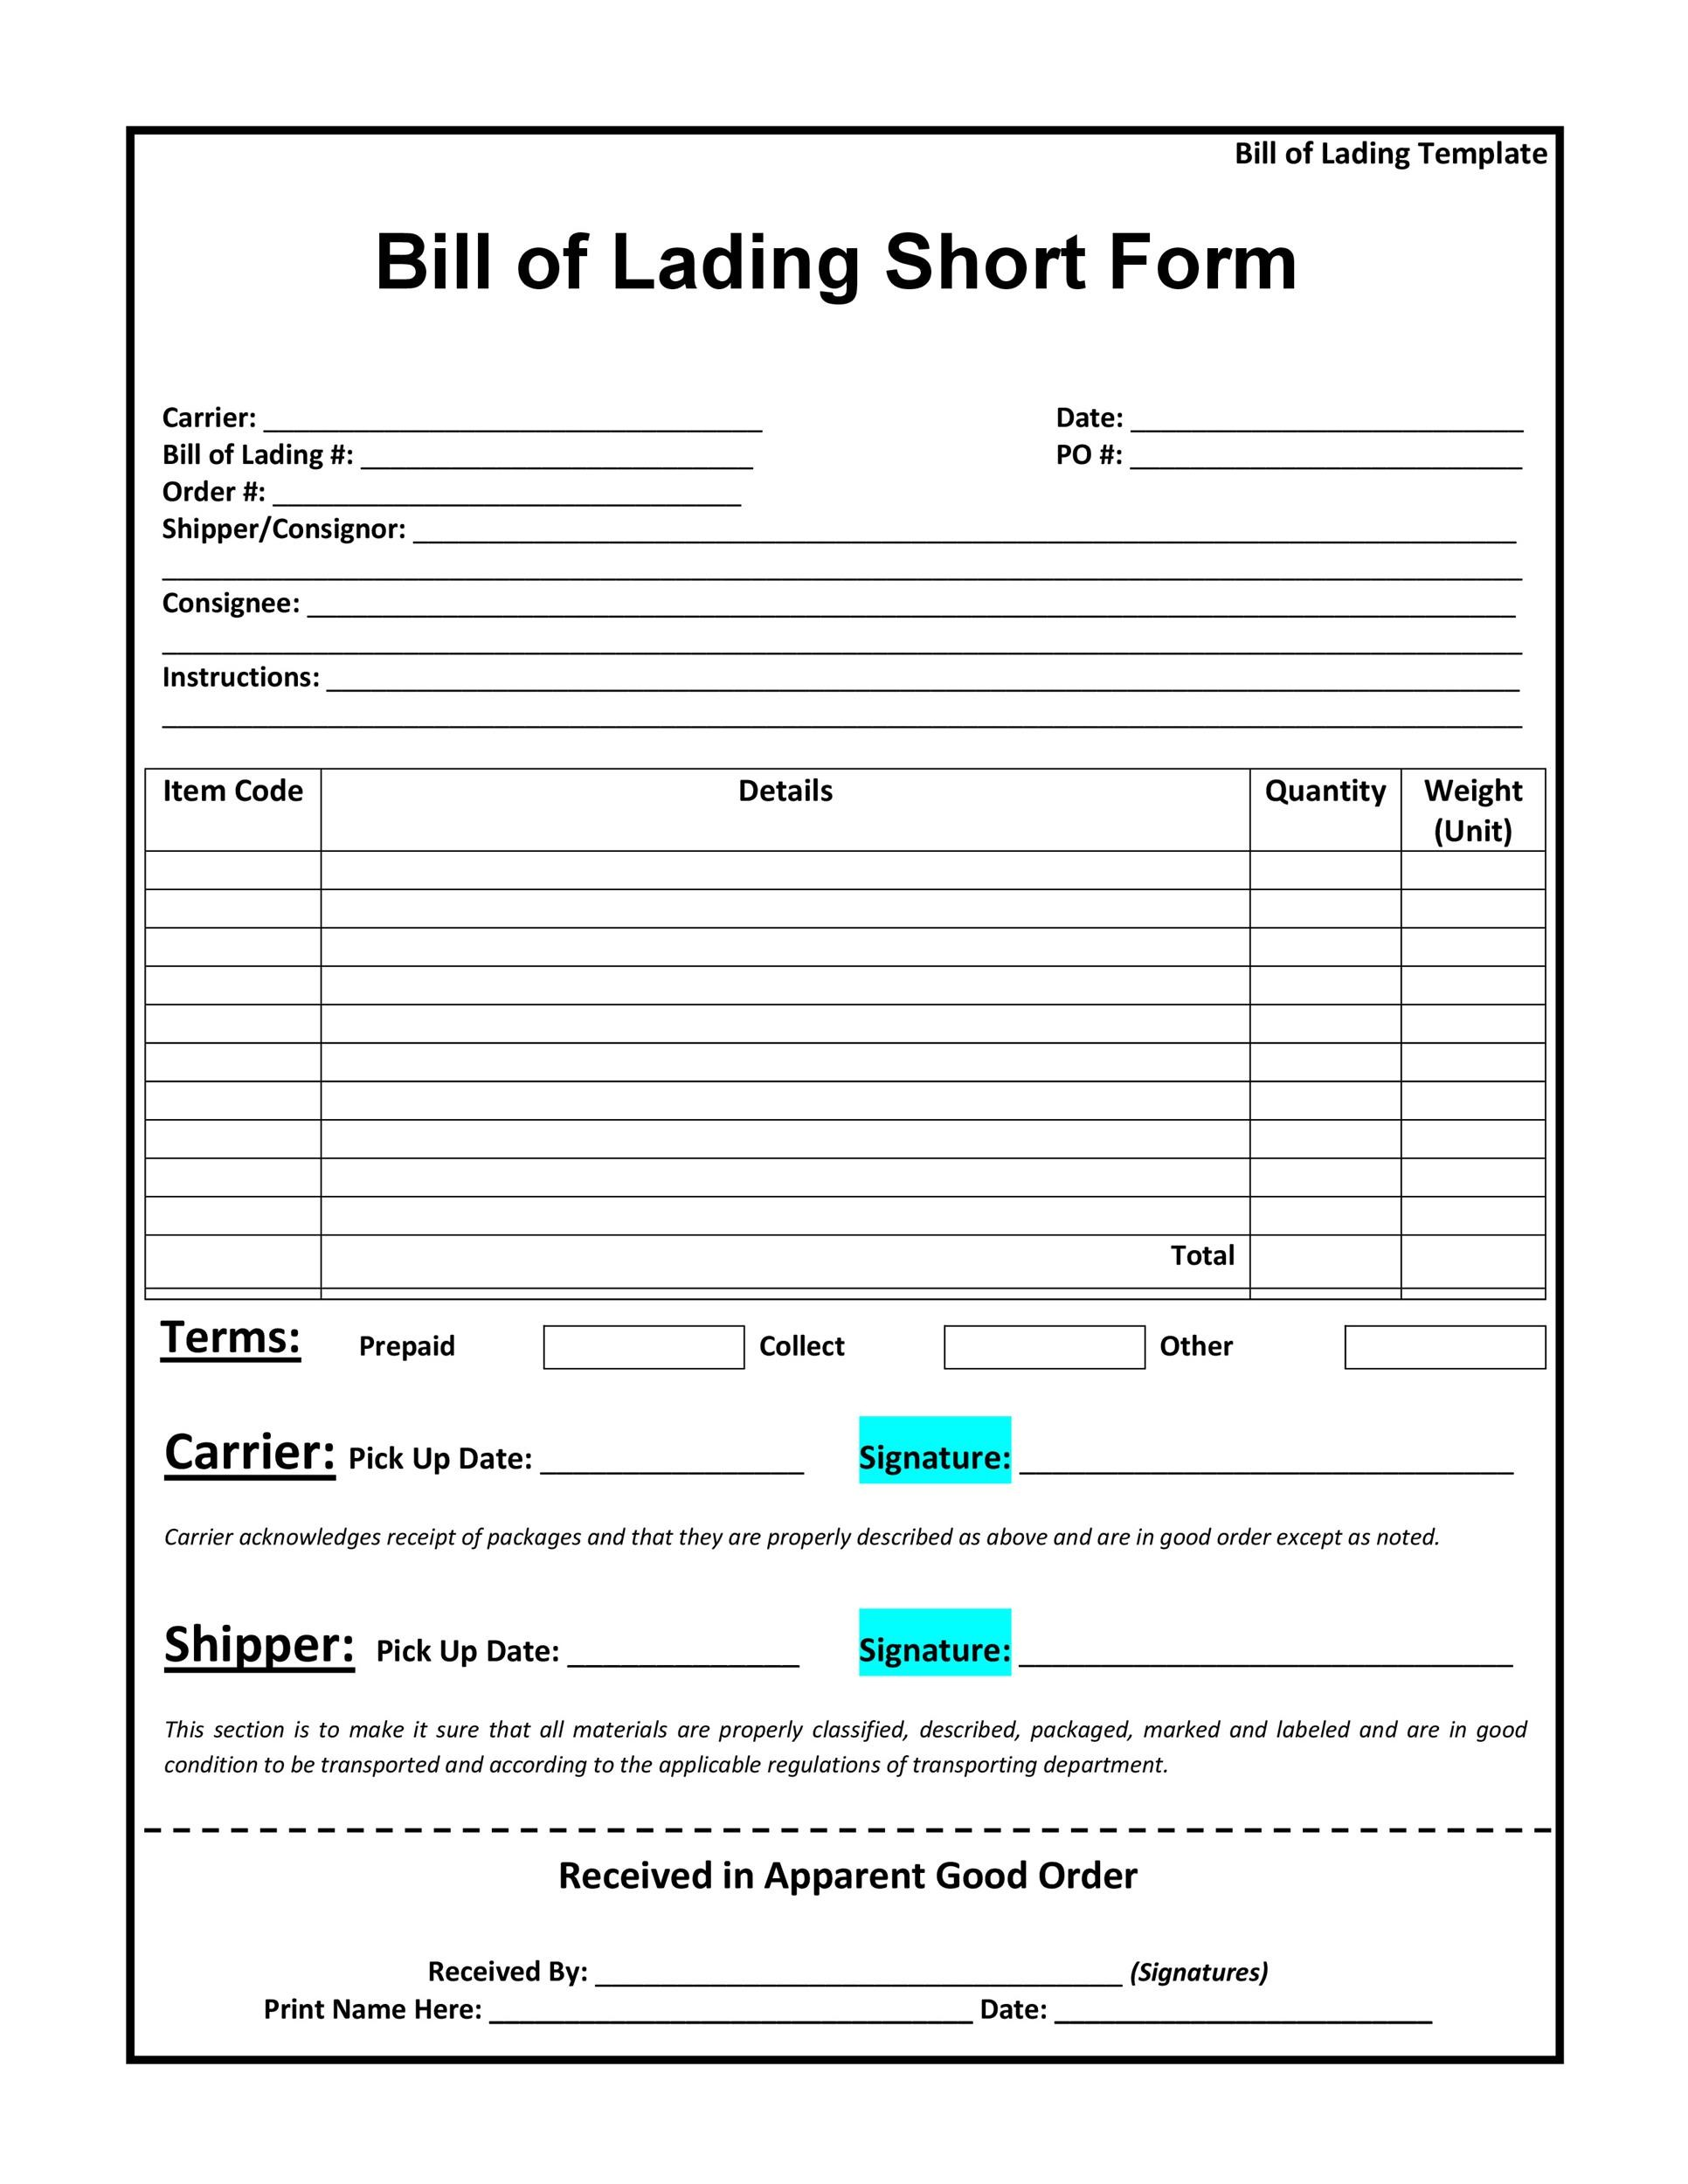 triplicate straight bill of lading 25 pack 8mp min 25